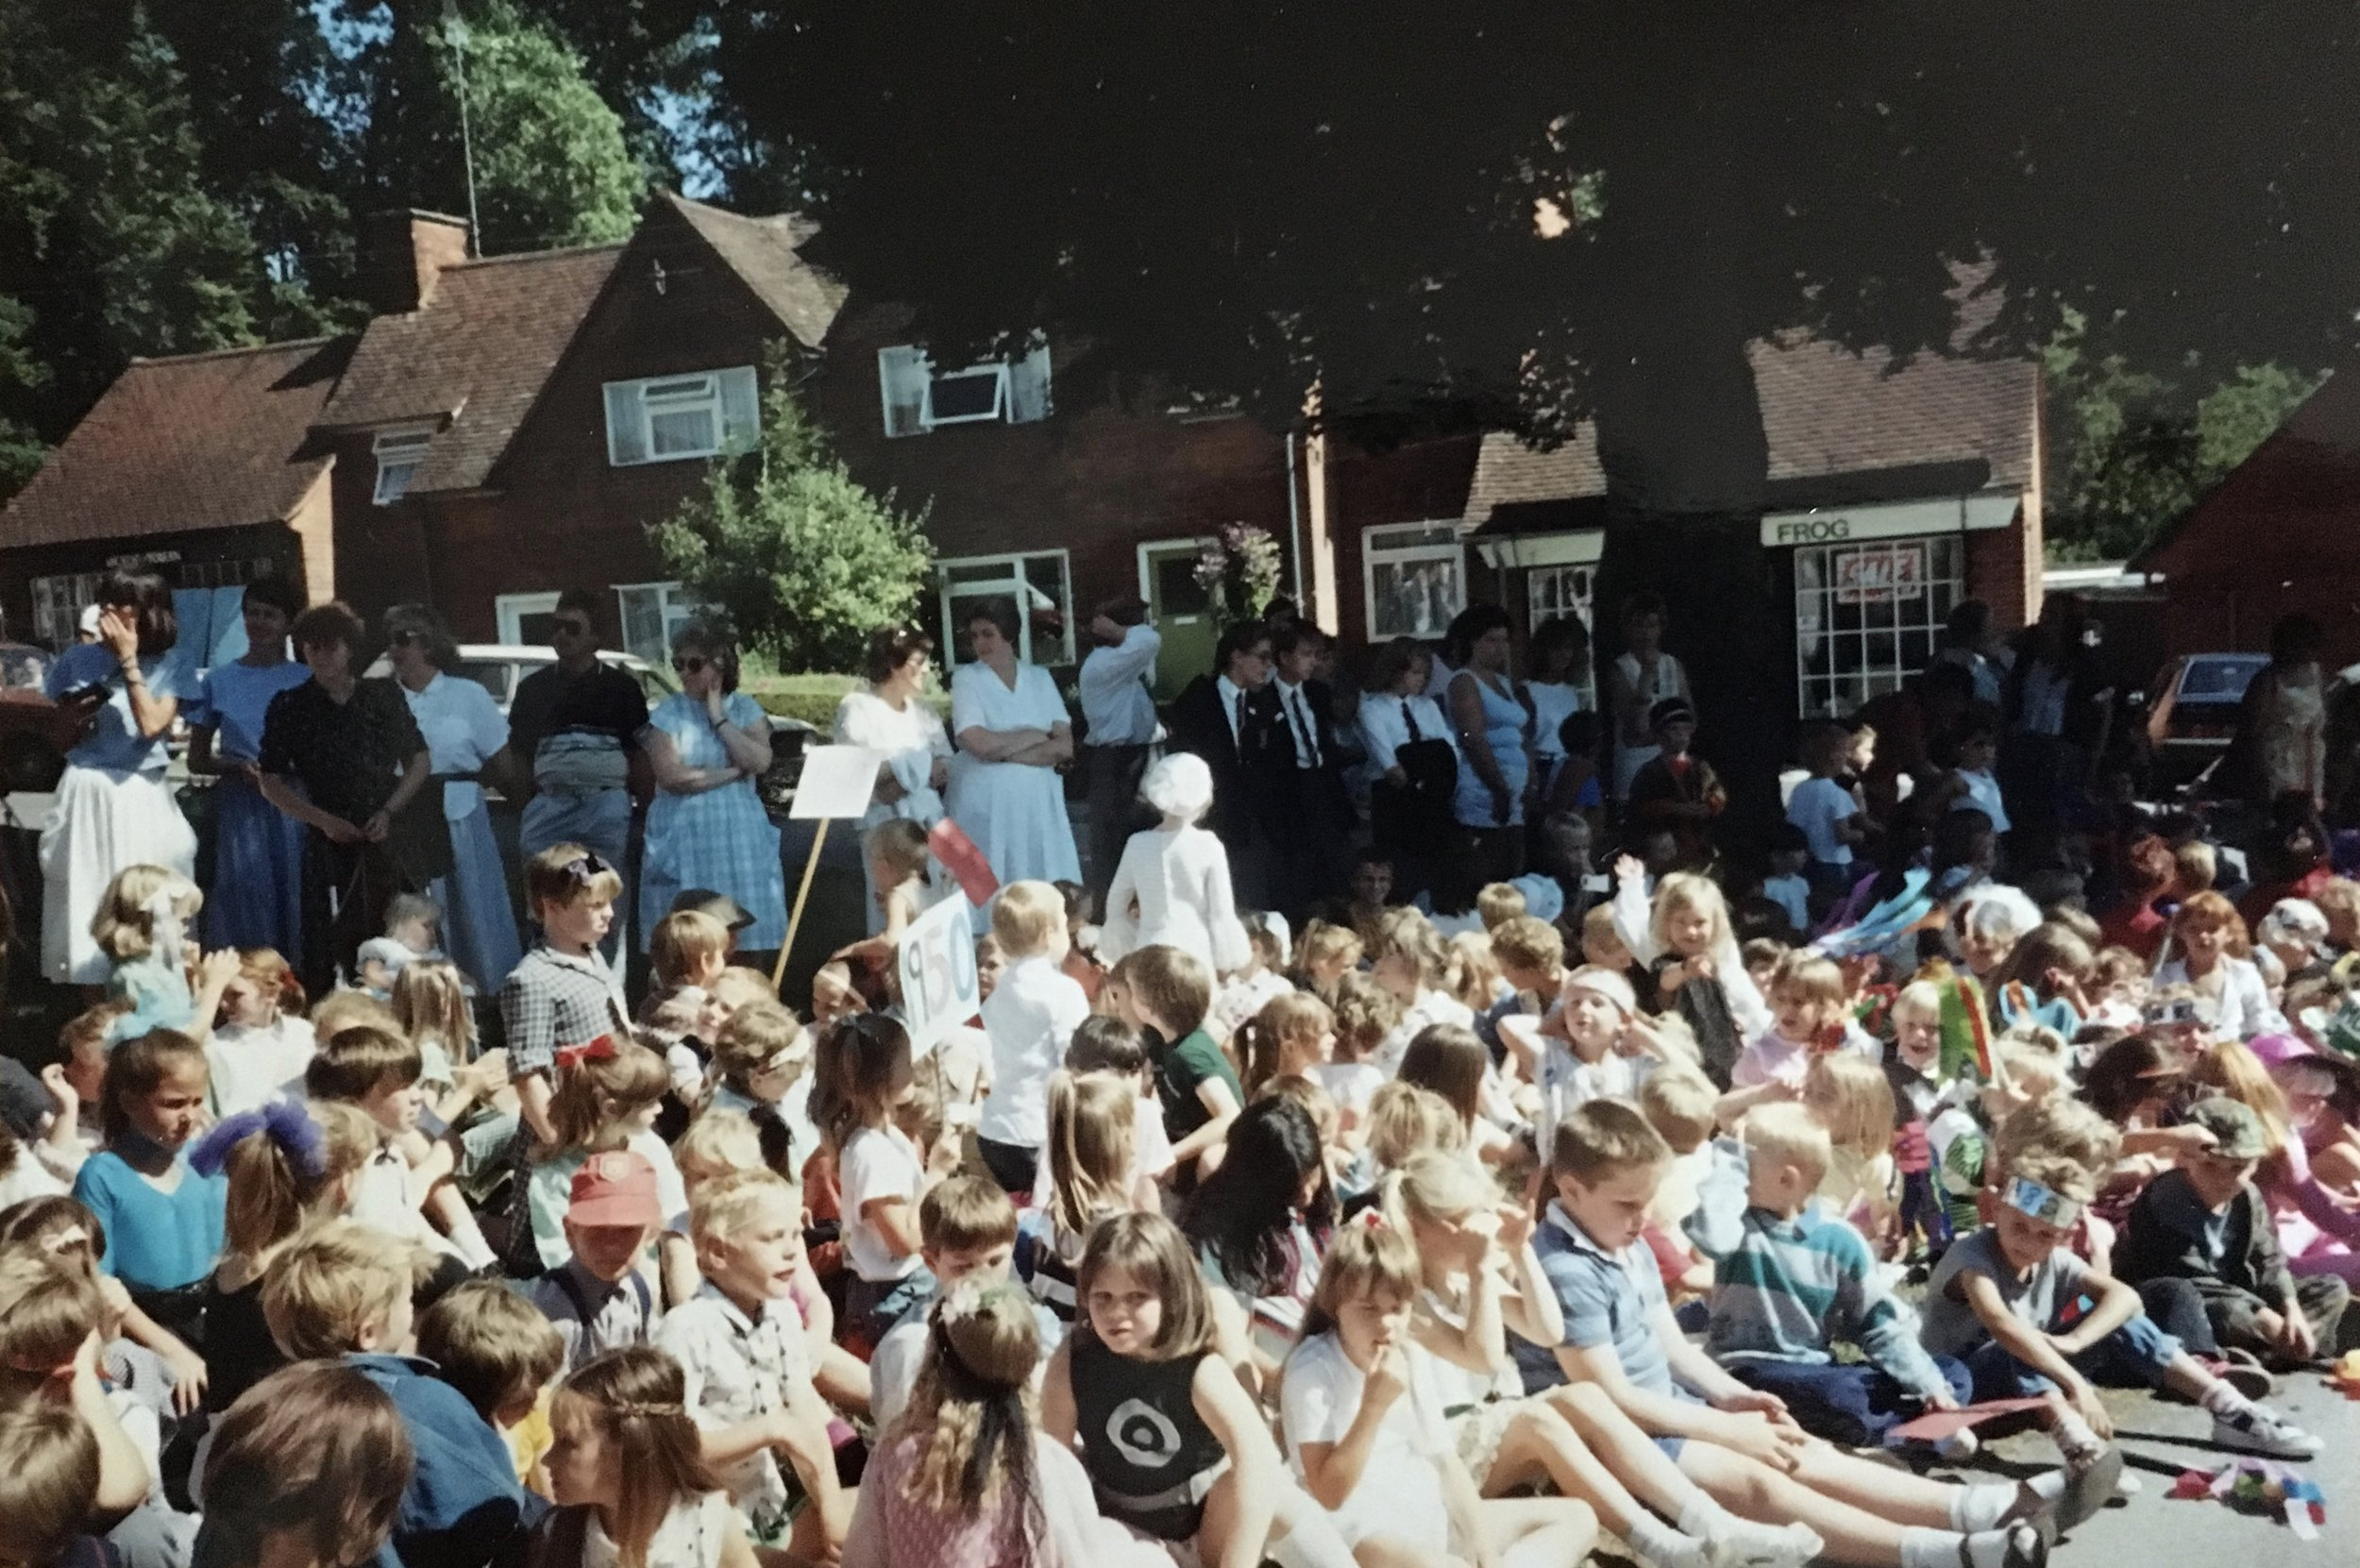 Stanmore Jubilee Day, 14 July 1989 Cromwell Crescent - Tree planting